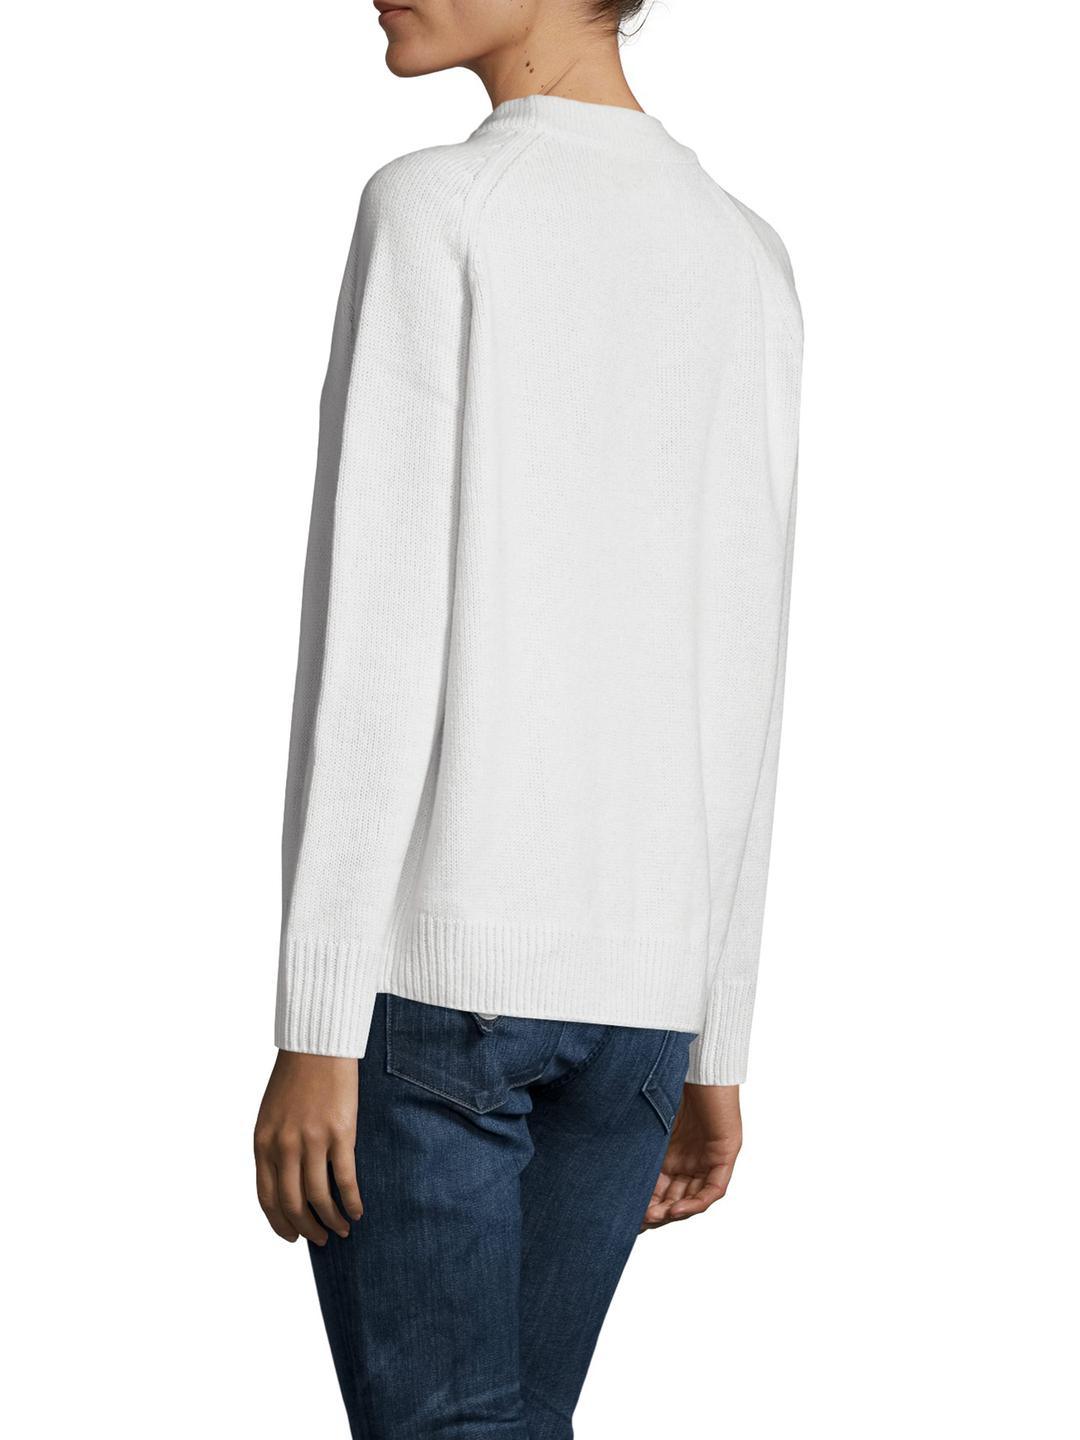 Wythe ny Cashmere Crewneck Sweater in White | Lyst